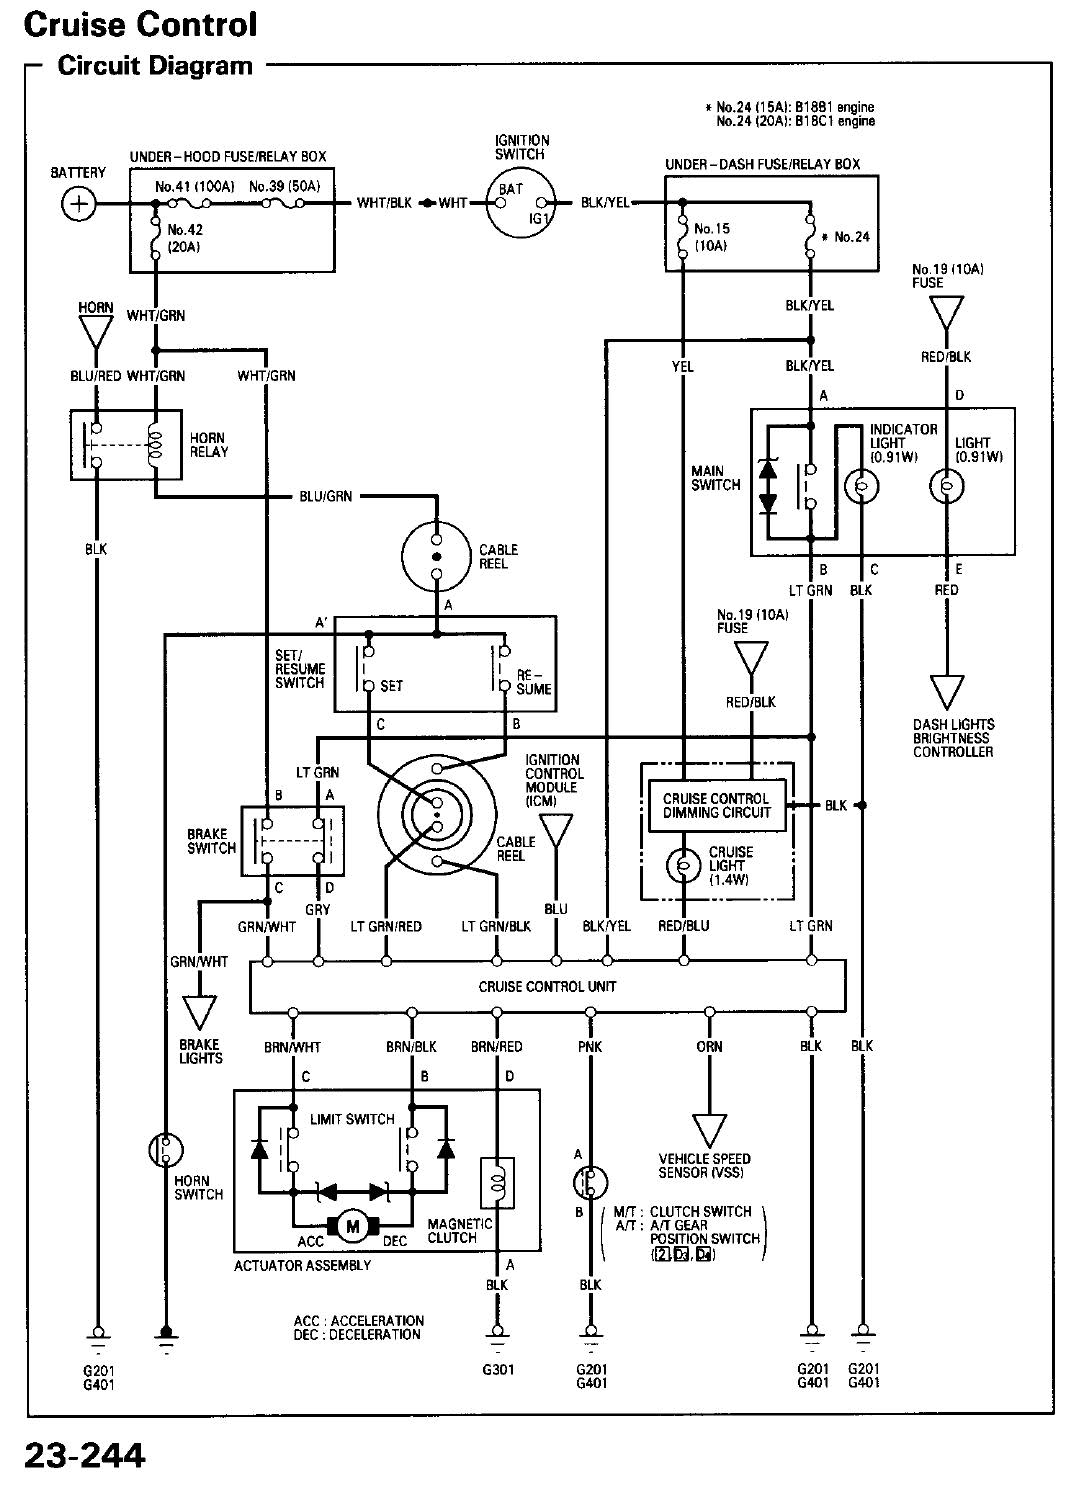 94 integra cruise control wiring diagram